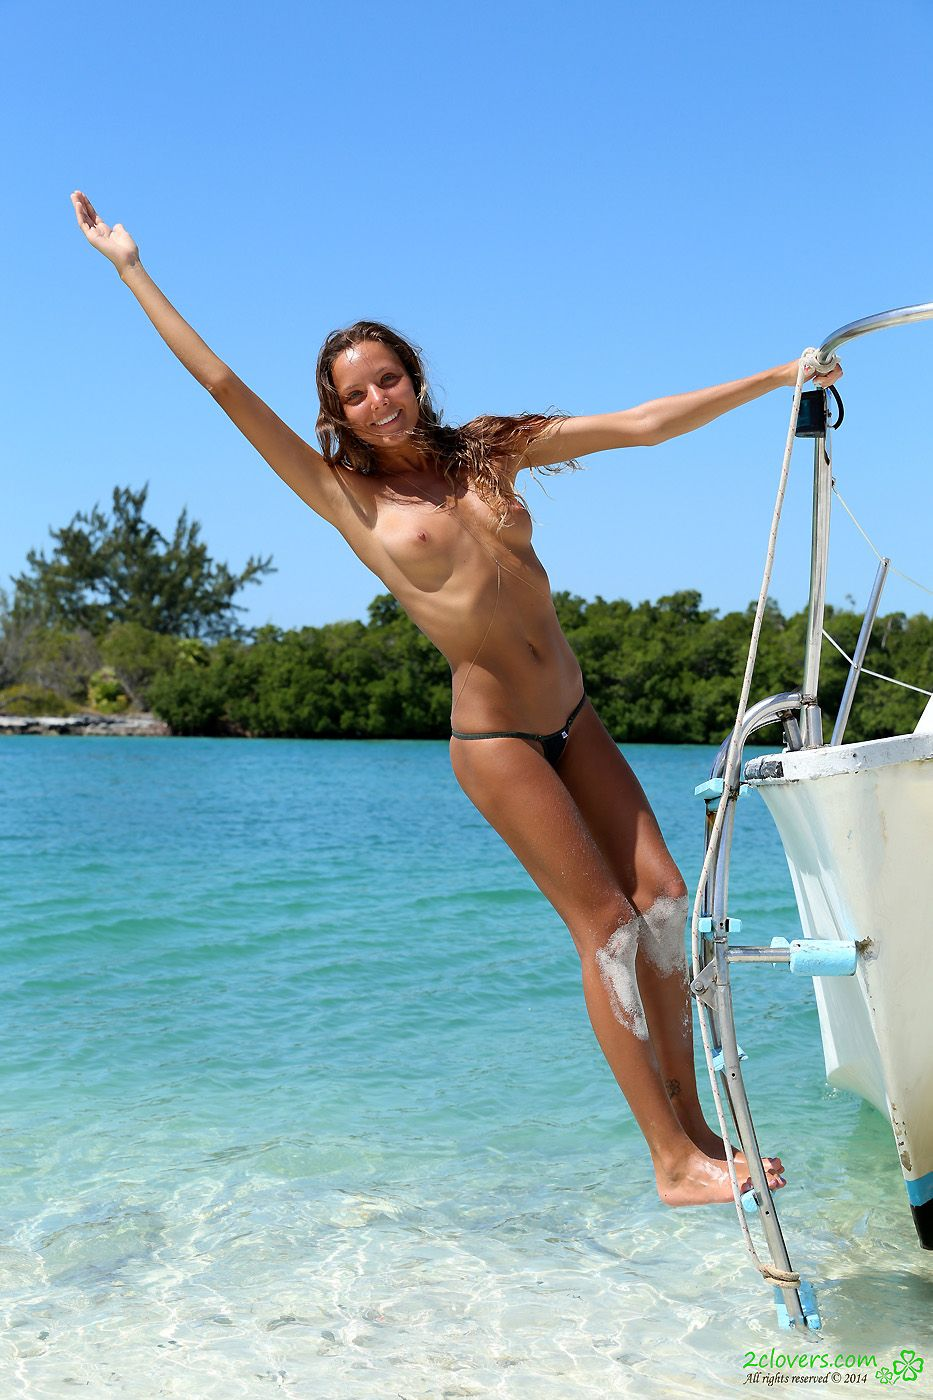 Nude In Boat  Tumblr  Ladies On Board  Pinterest -7119